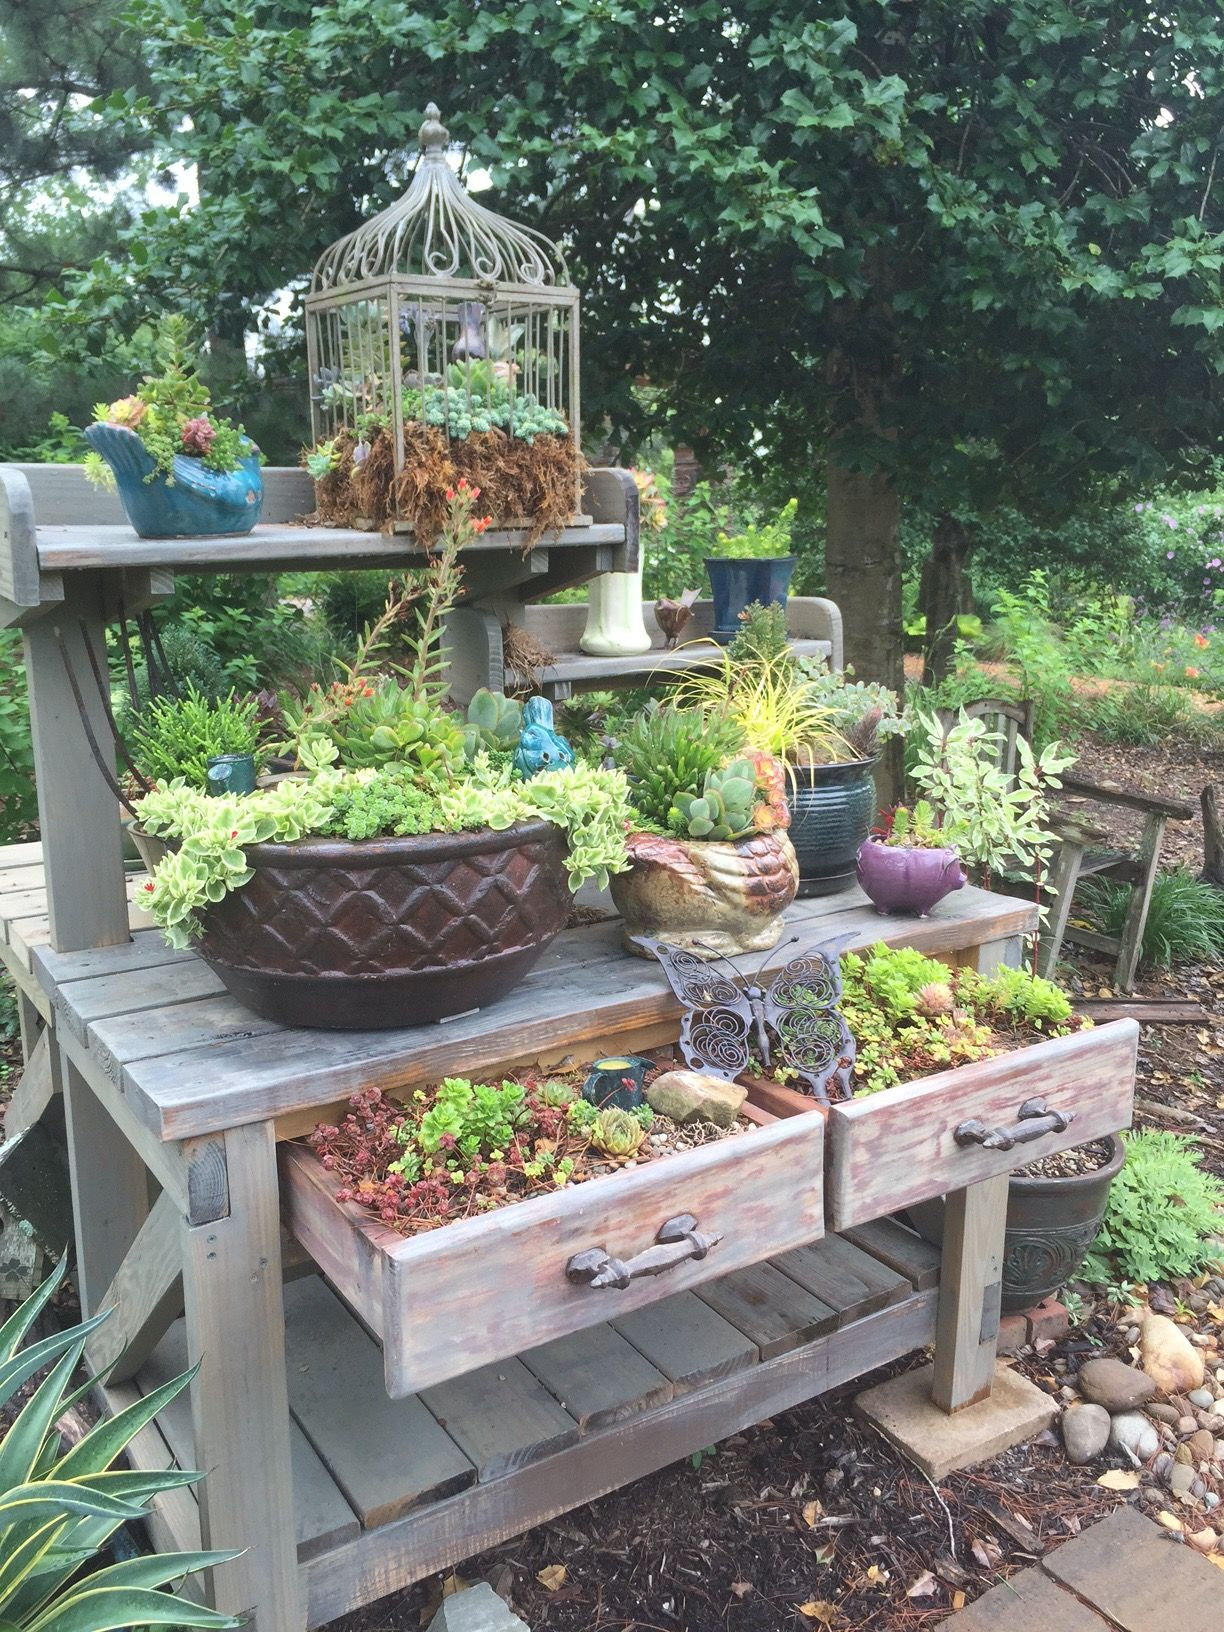 Outdoor Wooden Succulent Display Table Planters Drawers